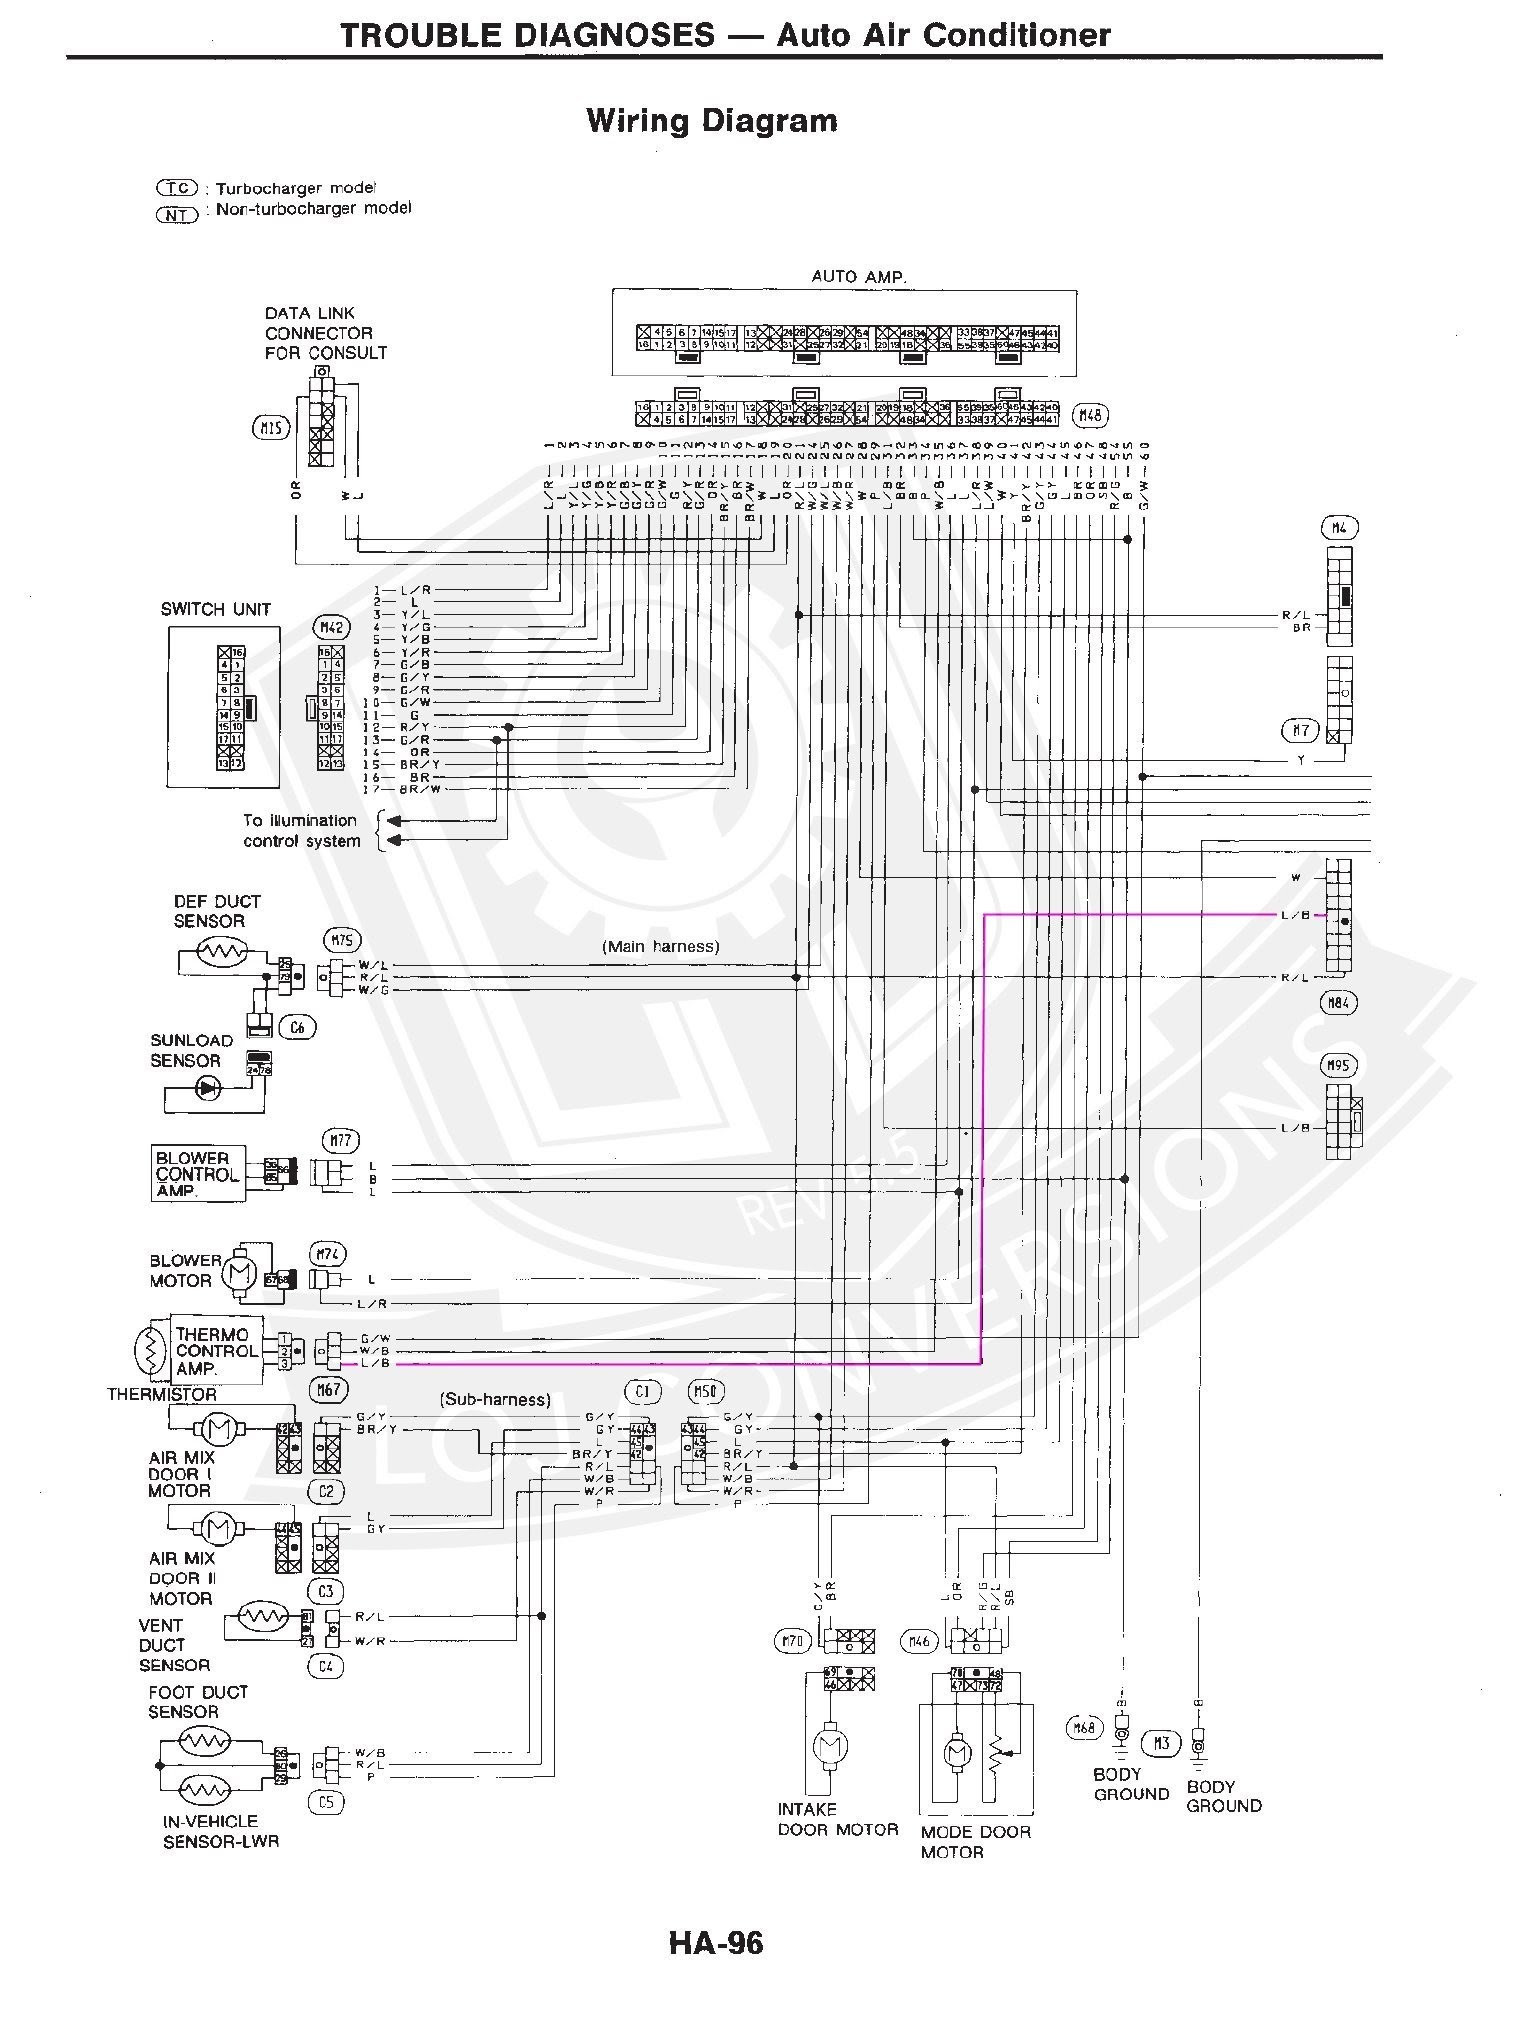 DIAGRAM] Nissan 300zx Wiring Diagram FULL Version HD Quality Wiring Diagram  - DIAGRAMCHILLER.LIONSICILIA.ITlionsicilia.it